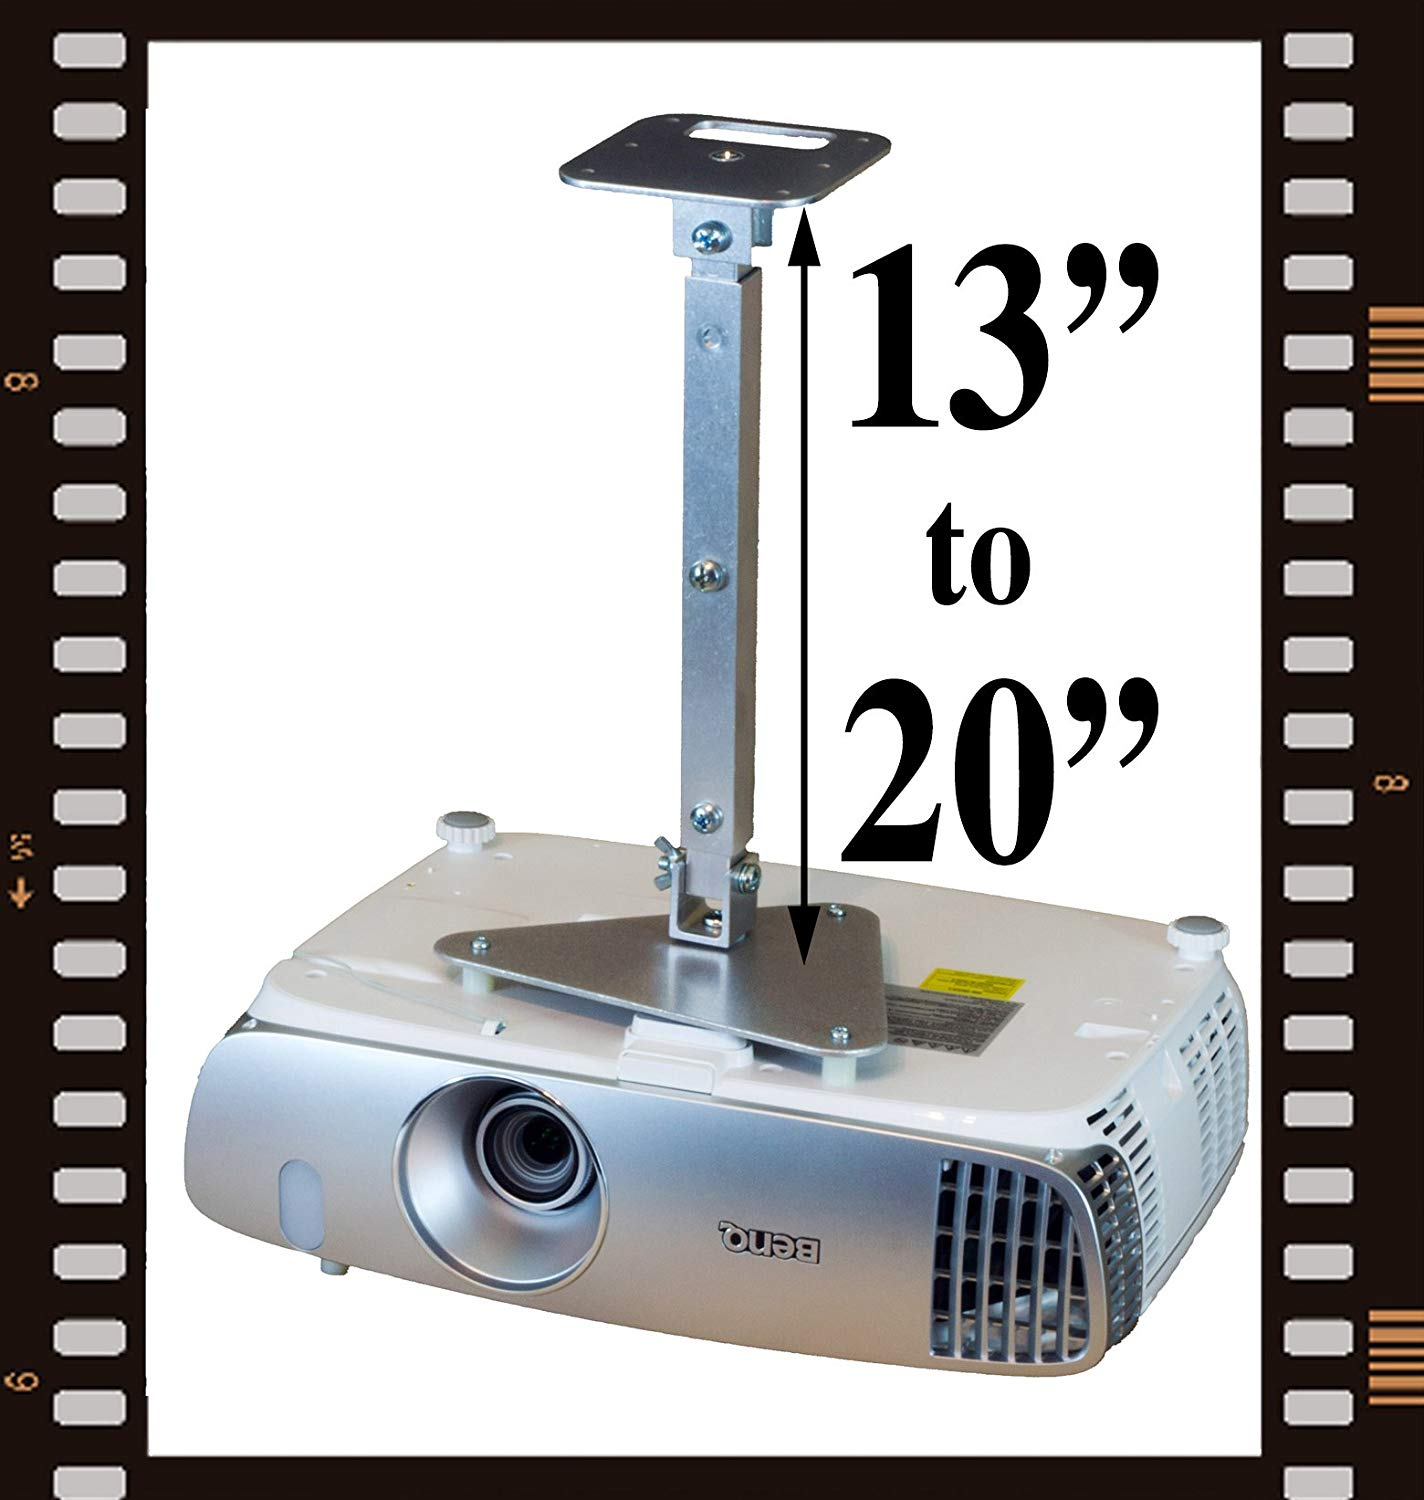 Projector Ceiling Mount for Optoma TS551 TW631-3D TX551 TX631-3D